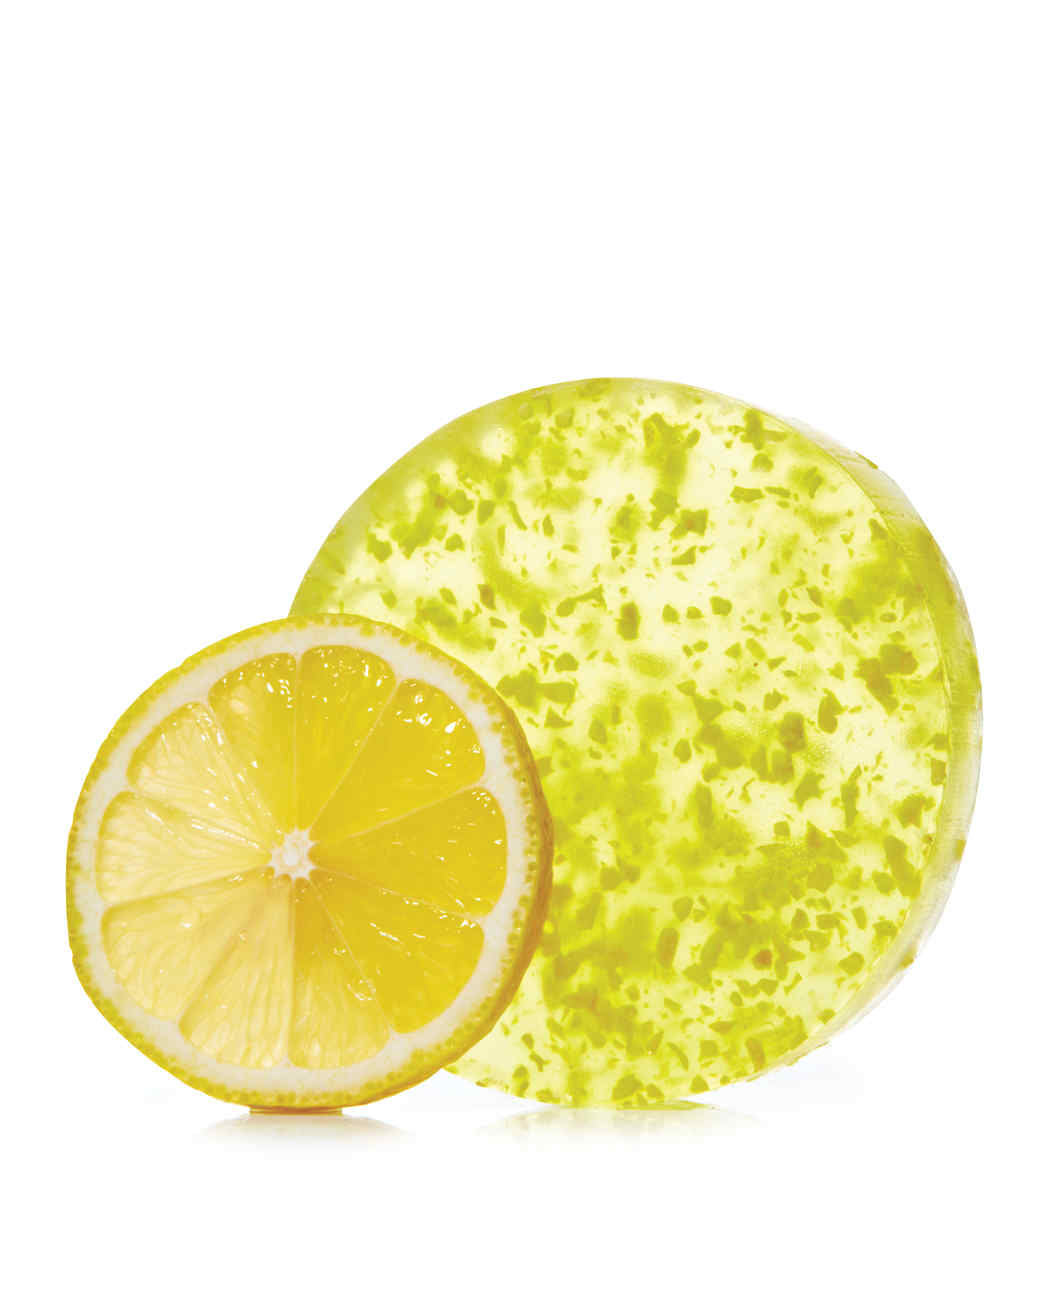 mld107006_0411_lemon_soap.jpg